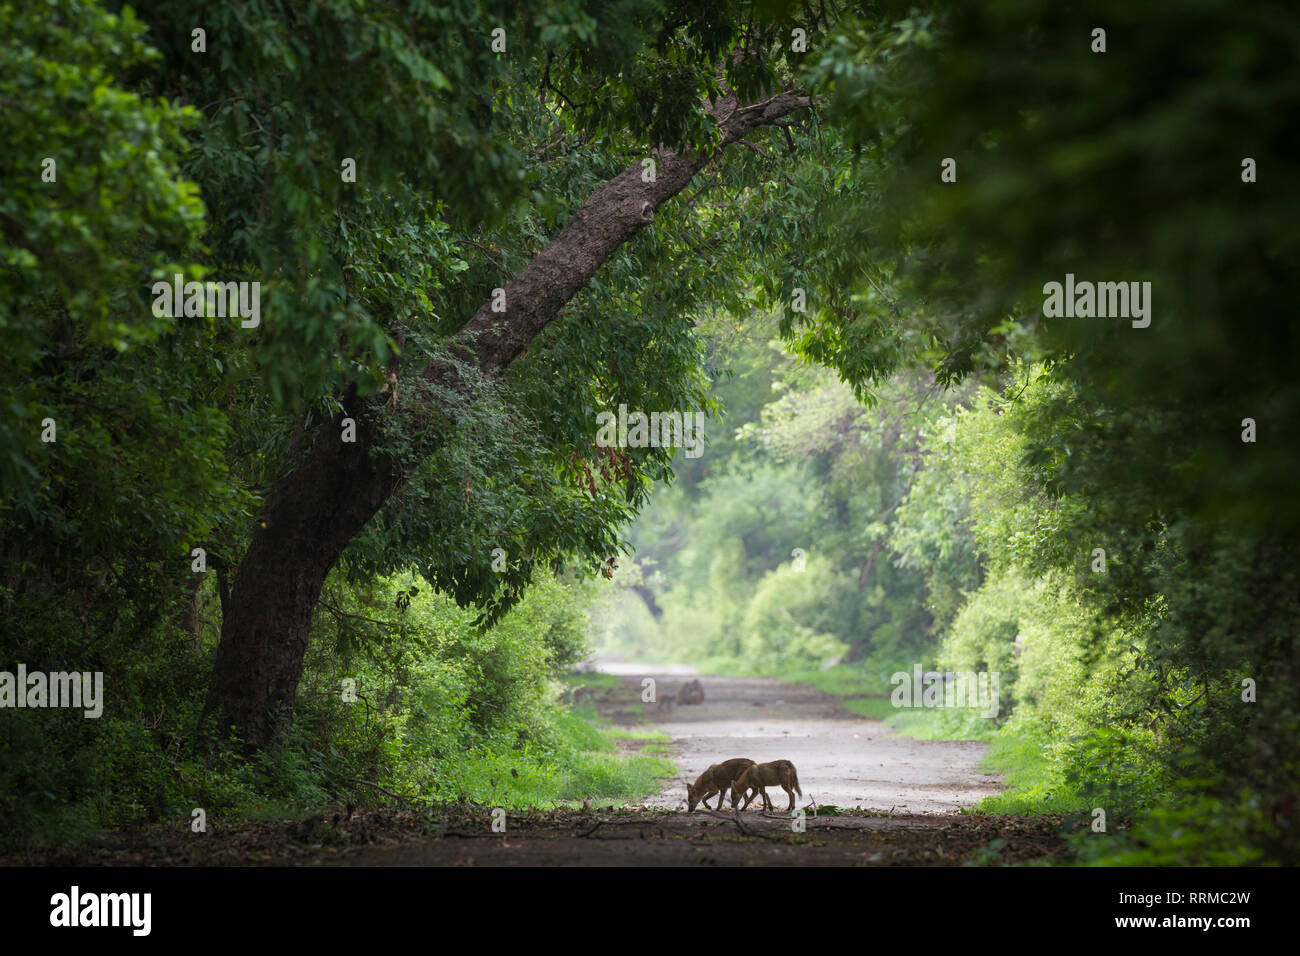 Indian Jackal (Canis aureus indicus), two in search of food on a forest track. Keoladeo National Park. Bharatpur. Rajasthan. India. - Stock Image